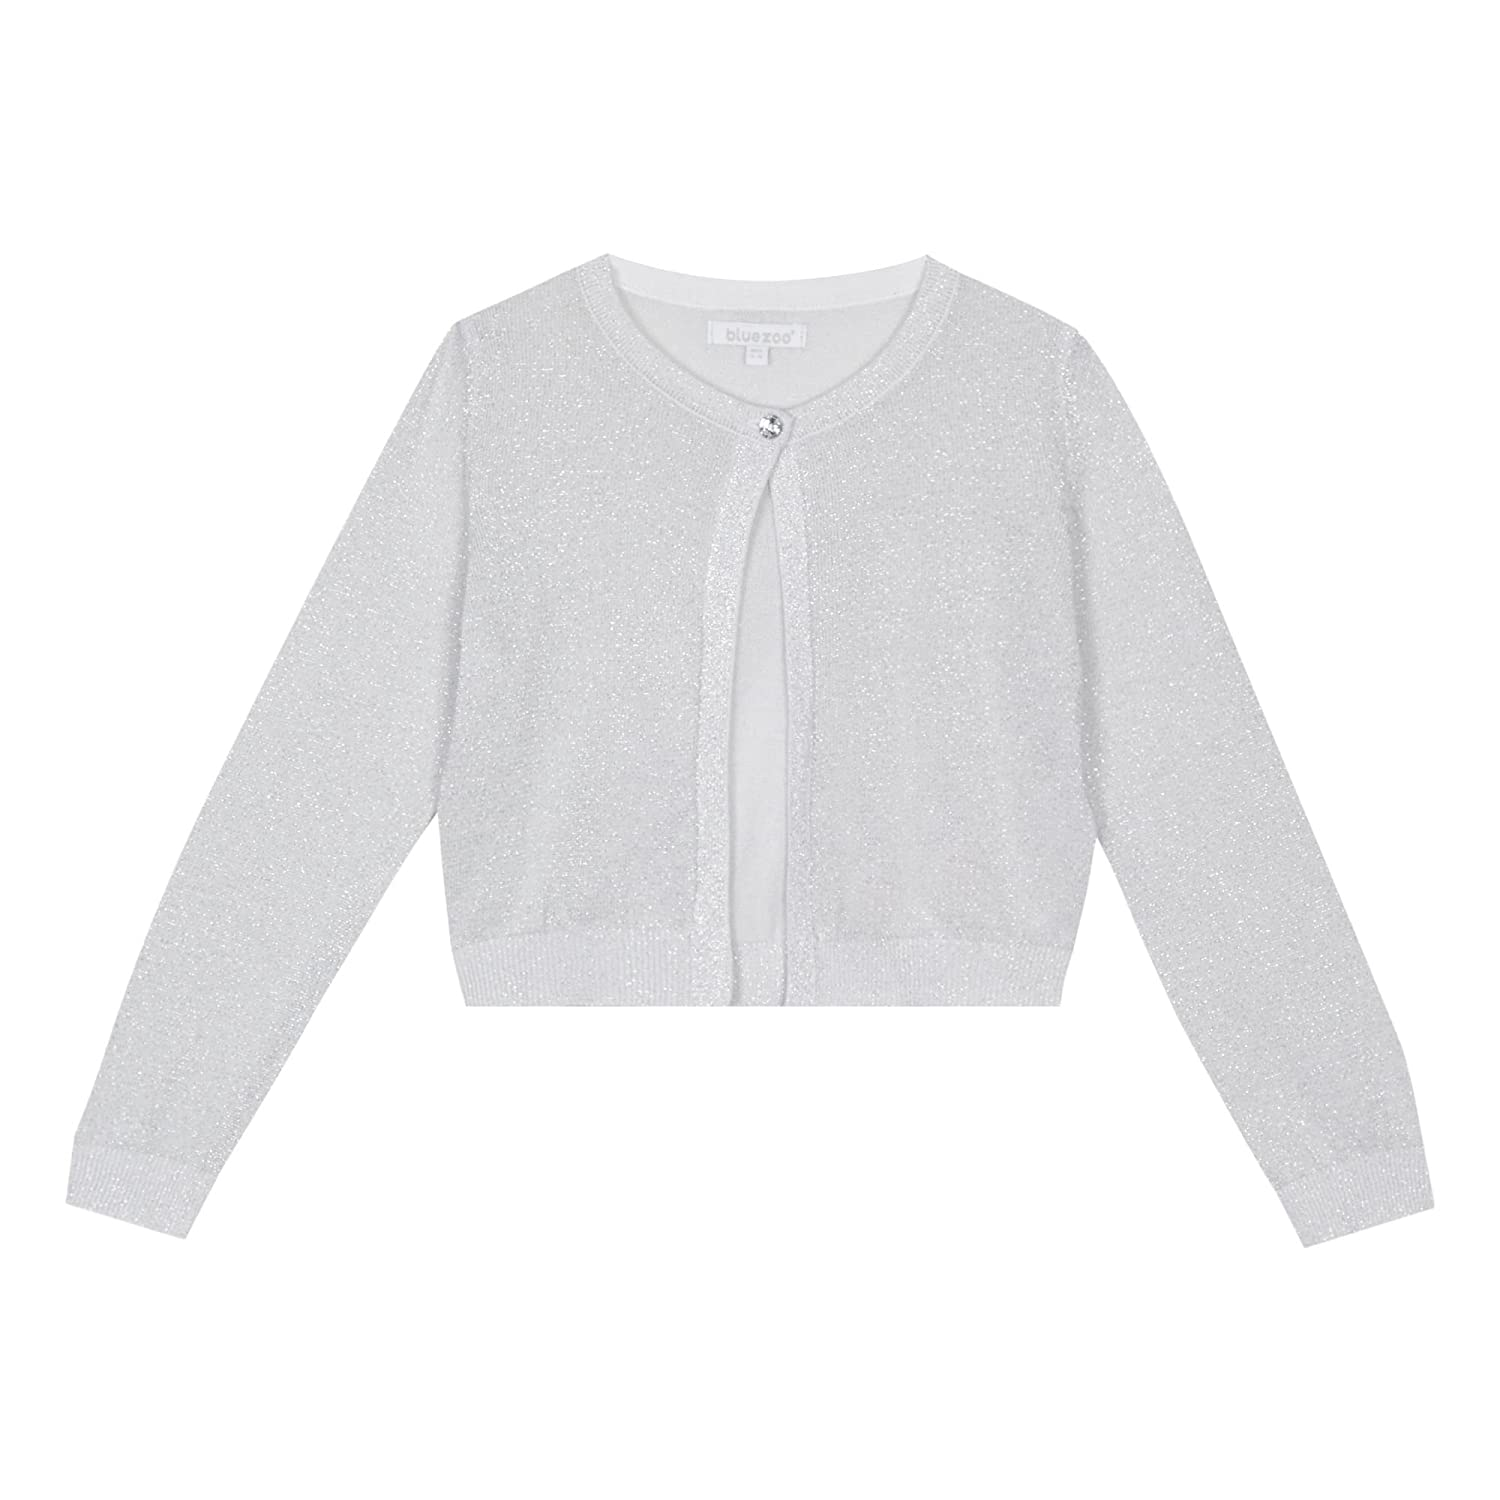 bluezoo Kids 'Girls' Silver Glitter Long Sleeve Cardigan